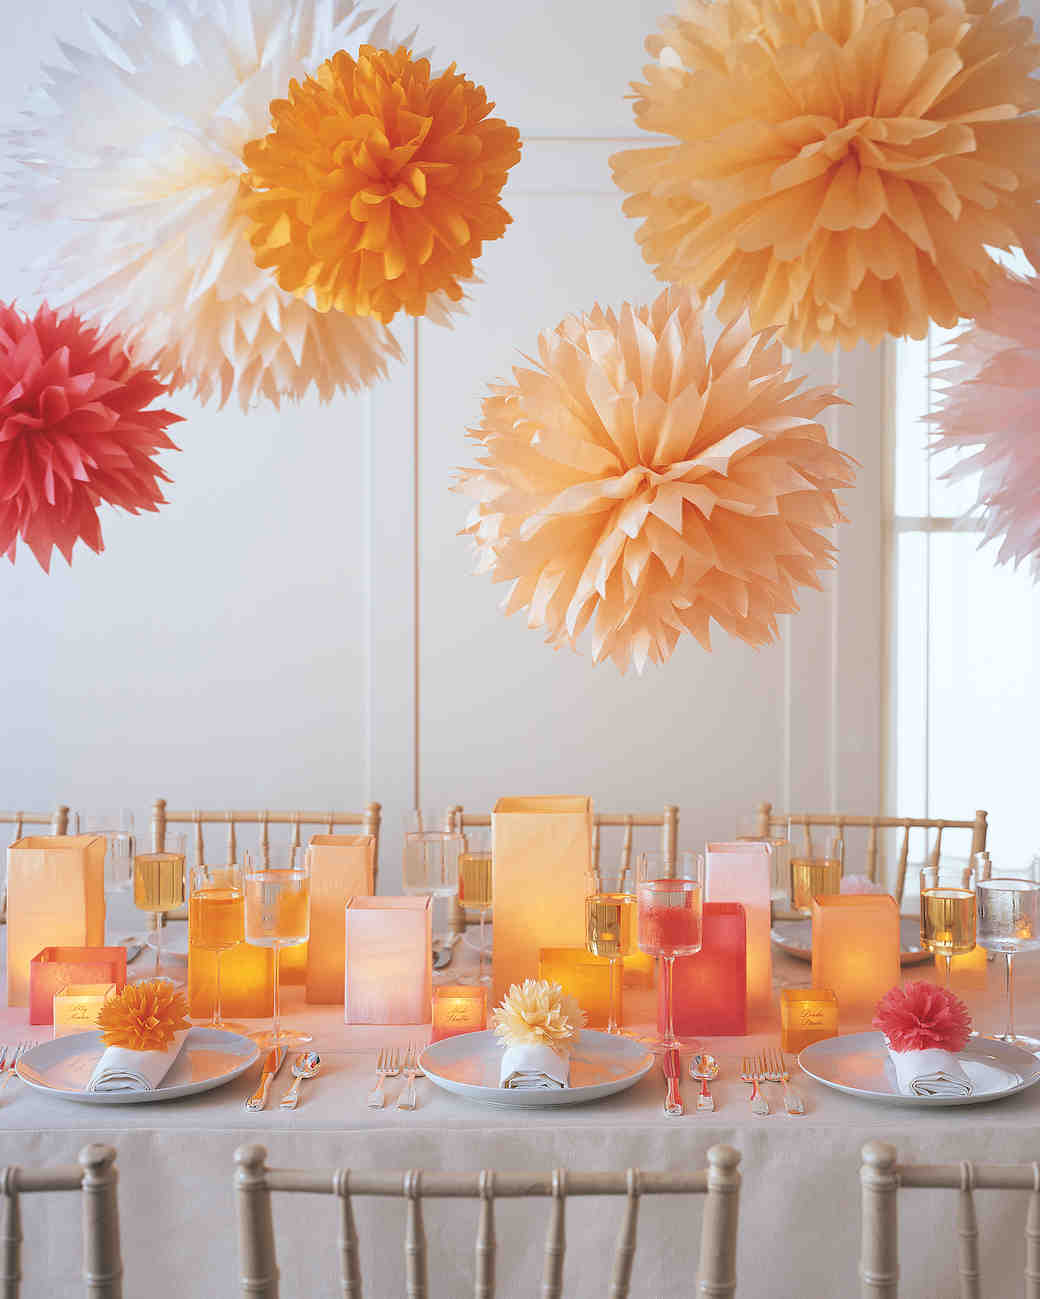 How to make paper and fabric flowers for your wedding martha how to make paper and fabric flowers for your wedding martha stewart weddings izmirmasajfo